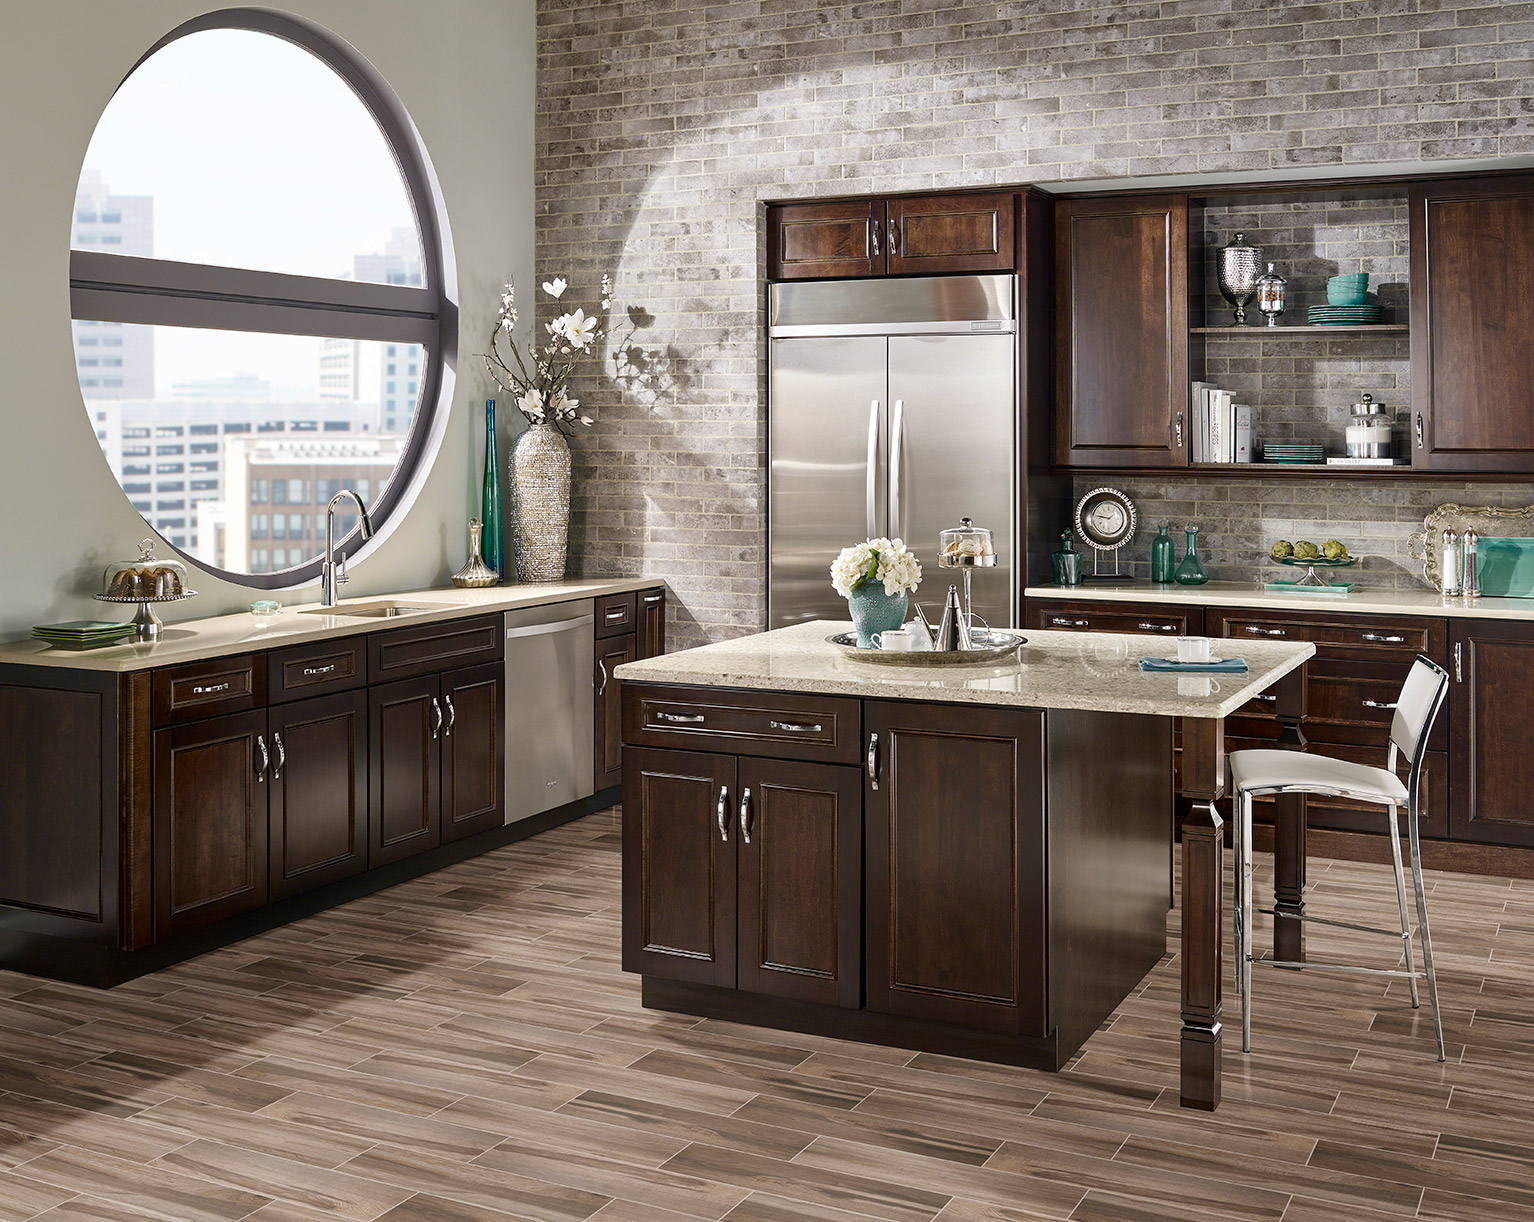 new products 2017msi slabs, countertops, flooring, porcelain